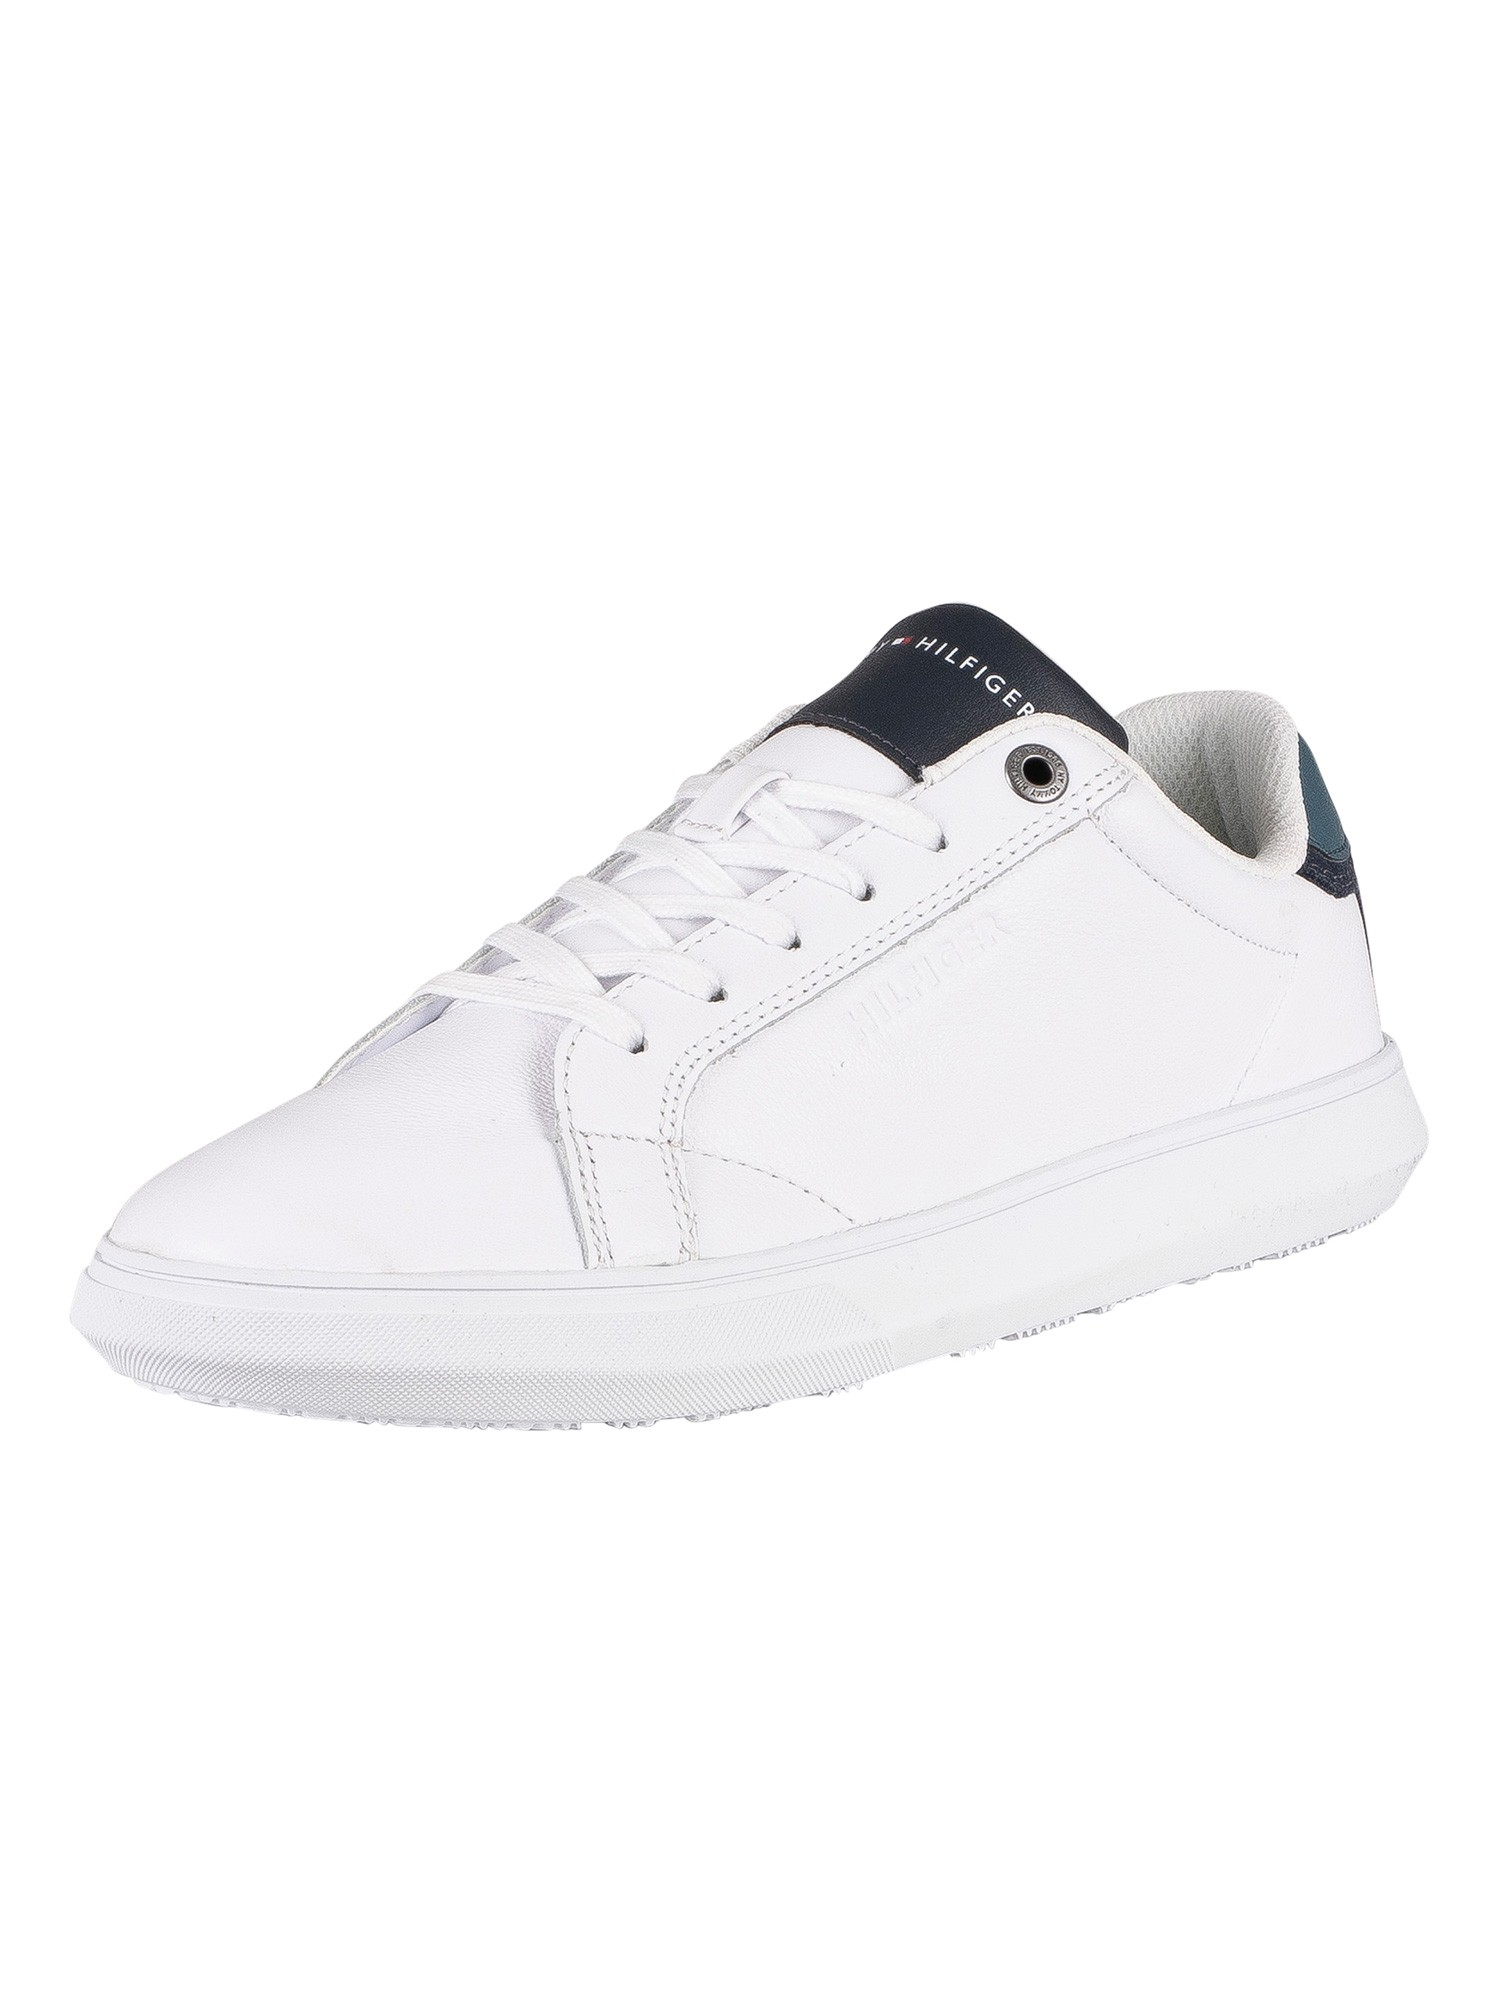 Essential Leather Cupsole Leather Trainers